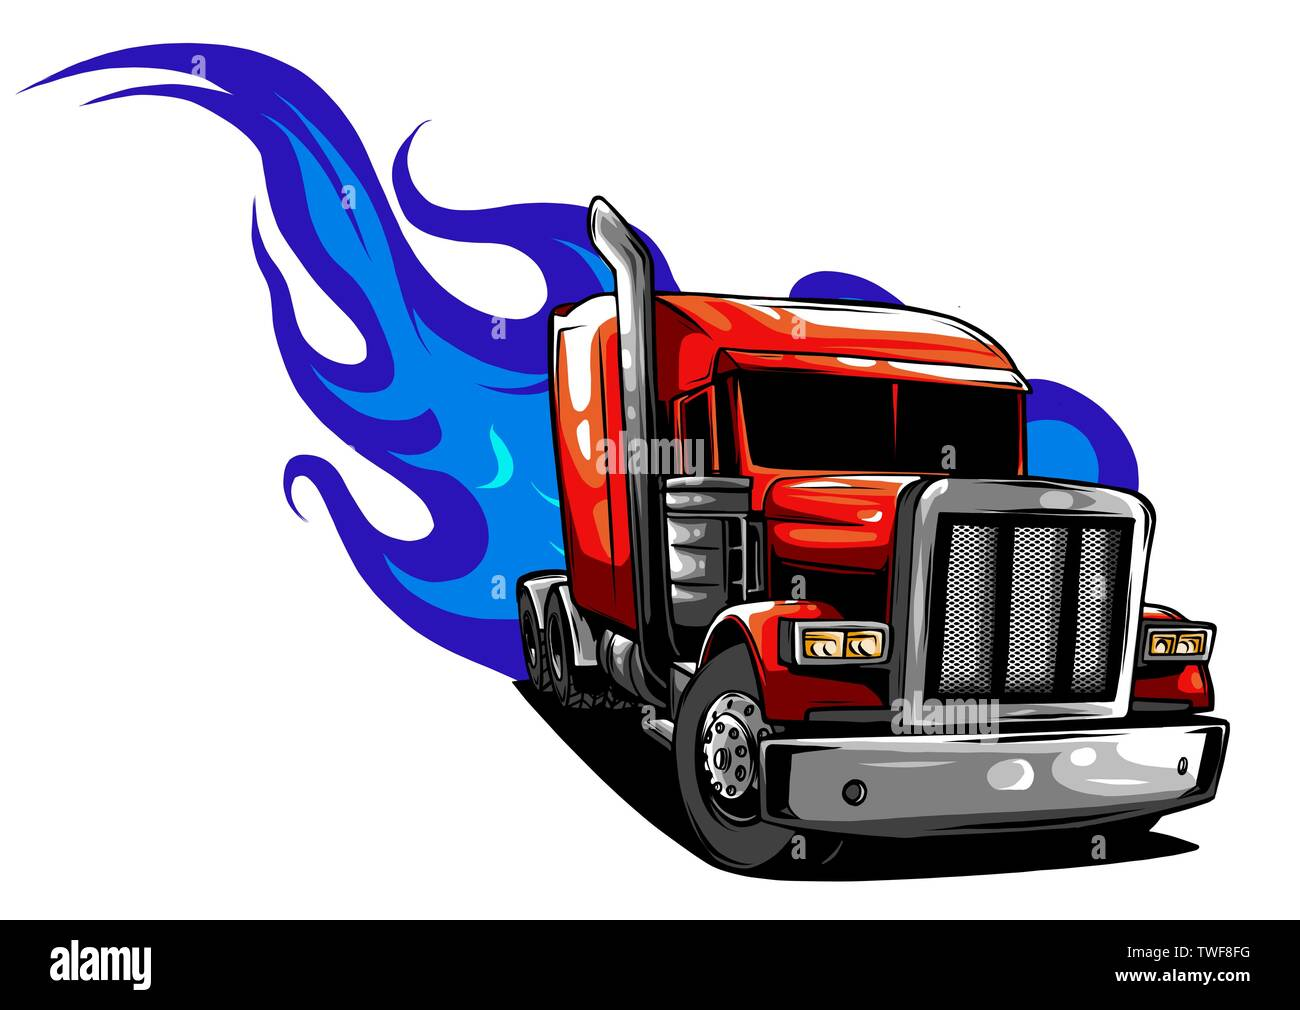 Cartoon Truck High Resolution Stock Photography And Images Alamy